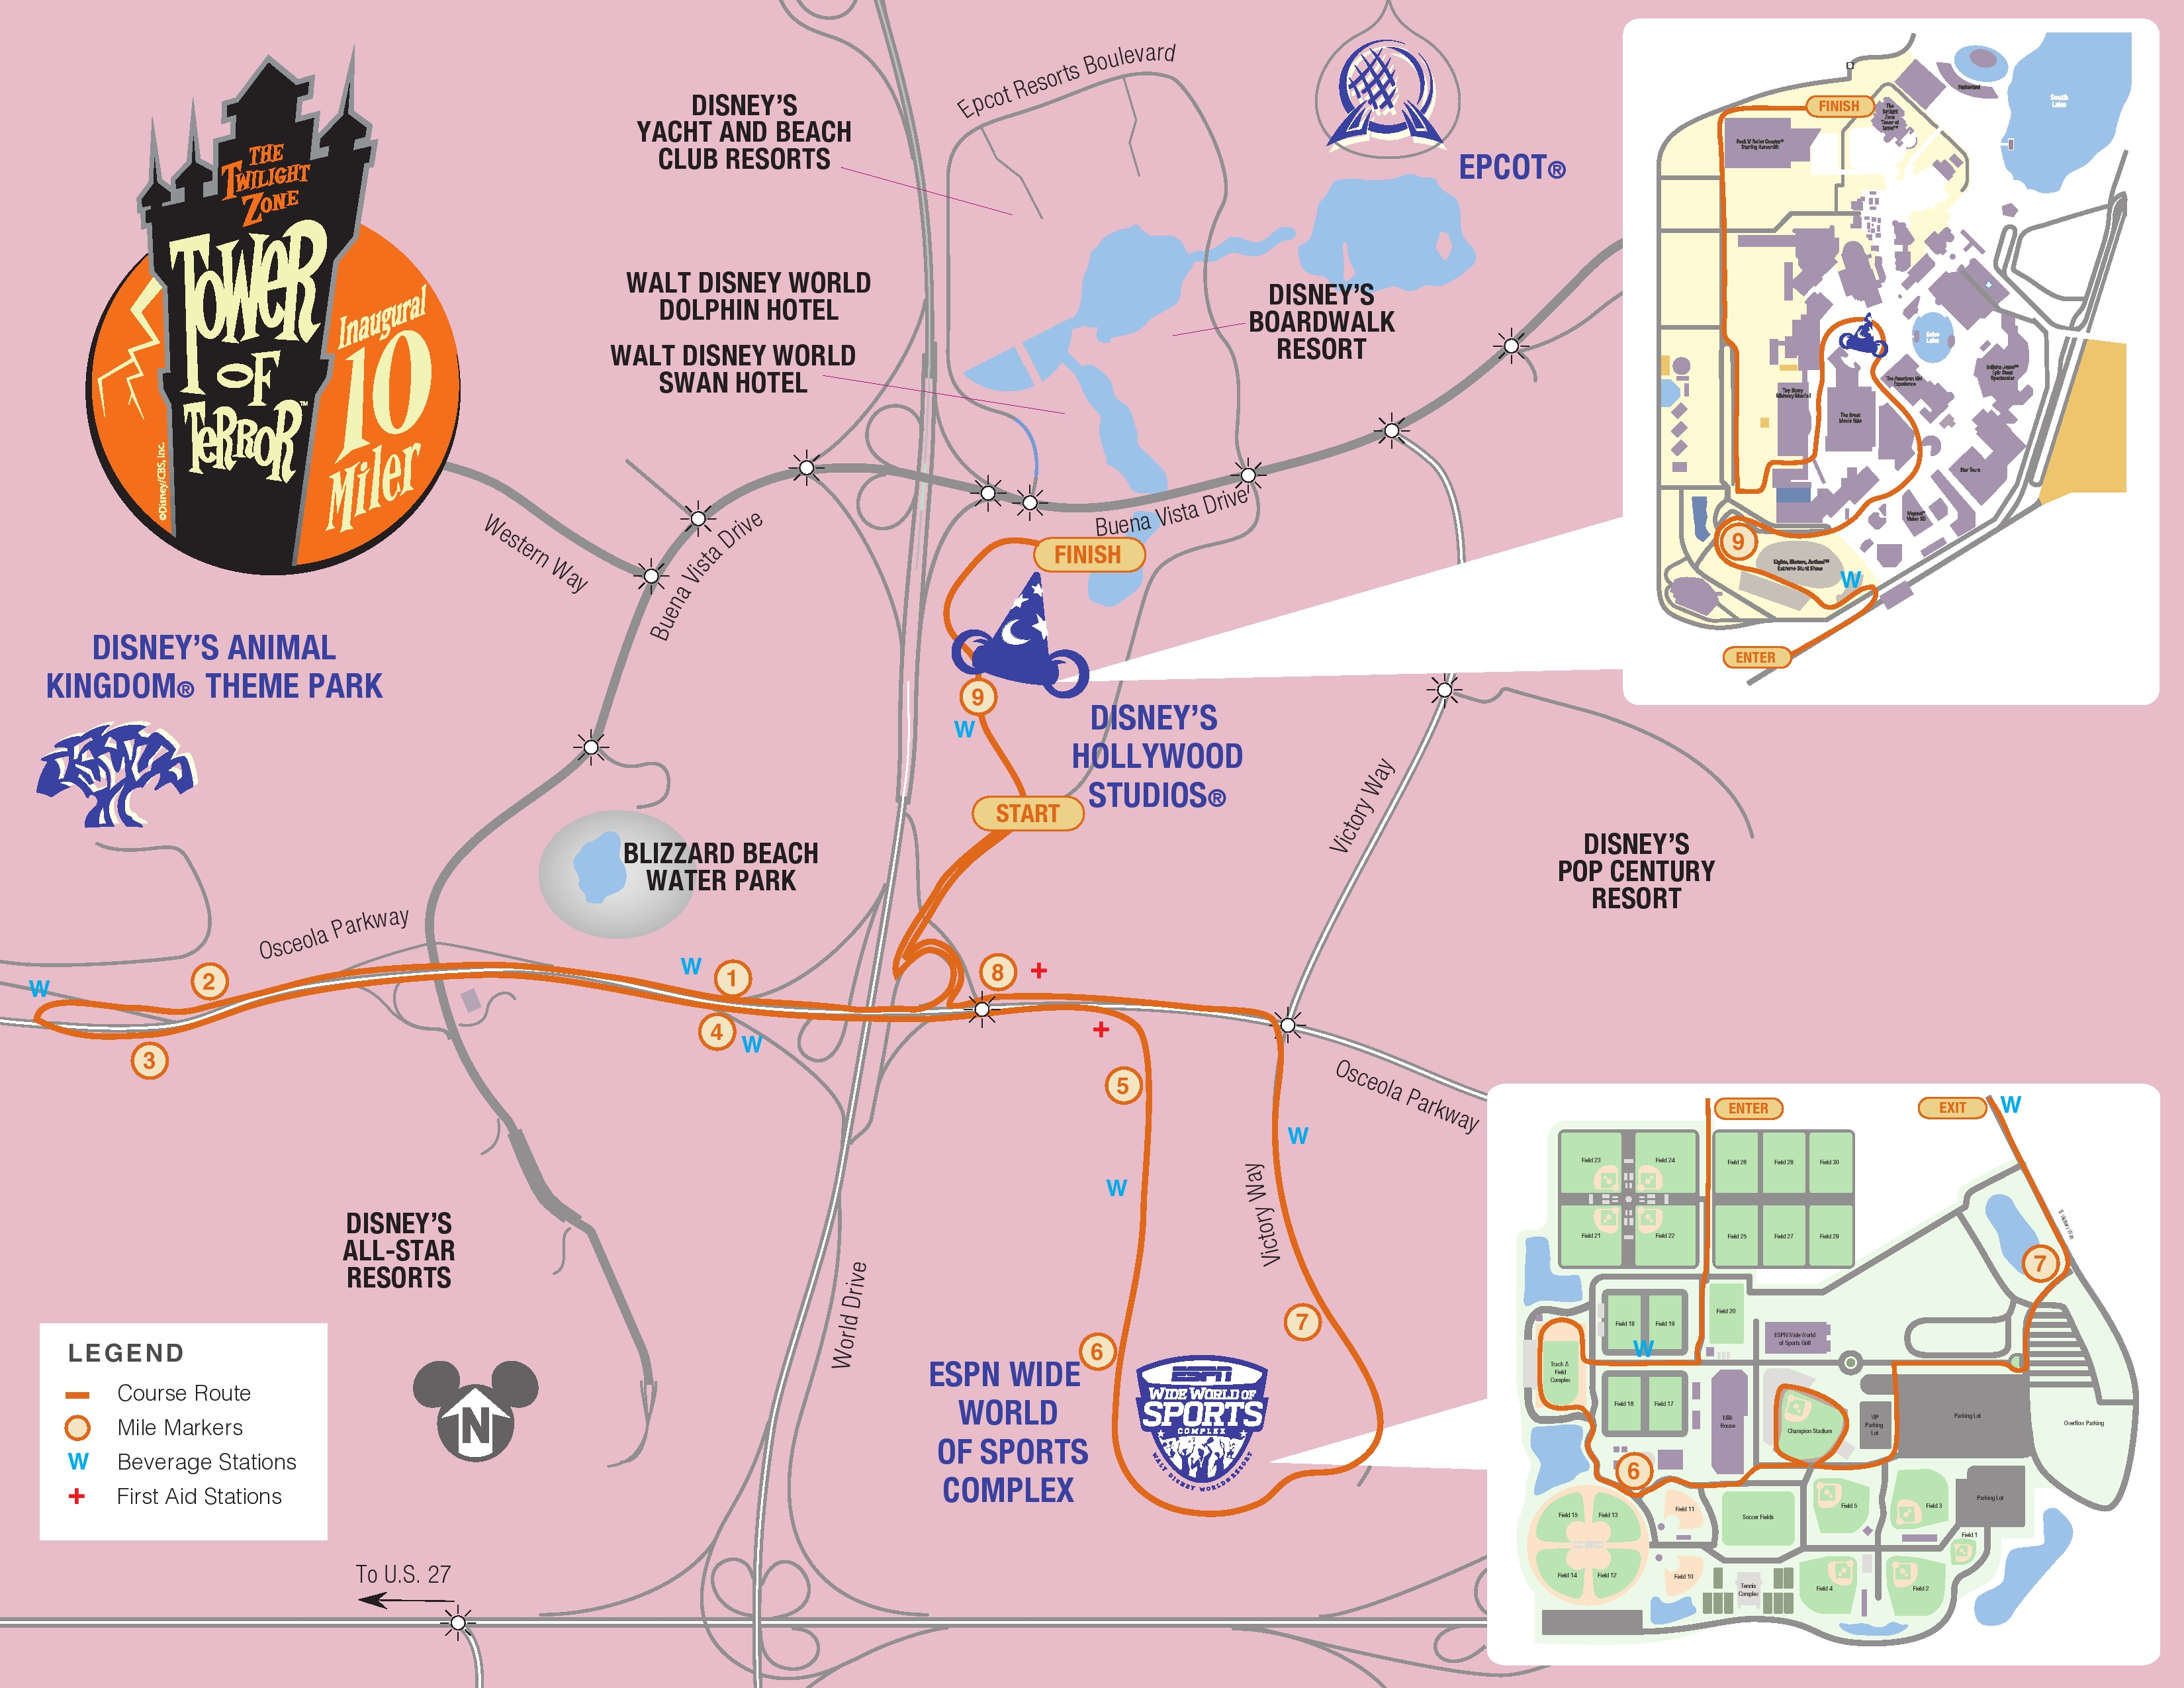 Twilight Zone Tower of Terror 10-Miler – The Map